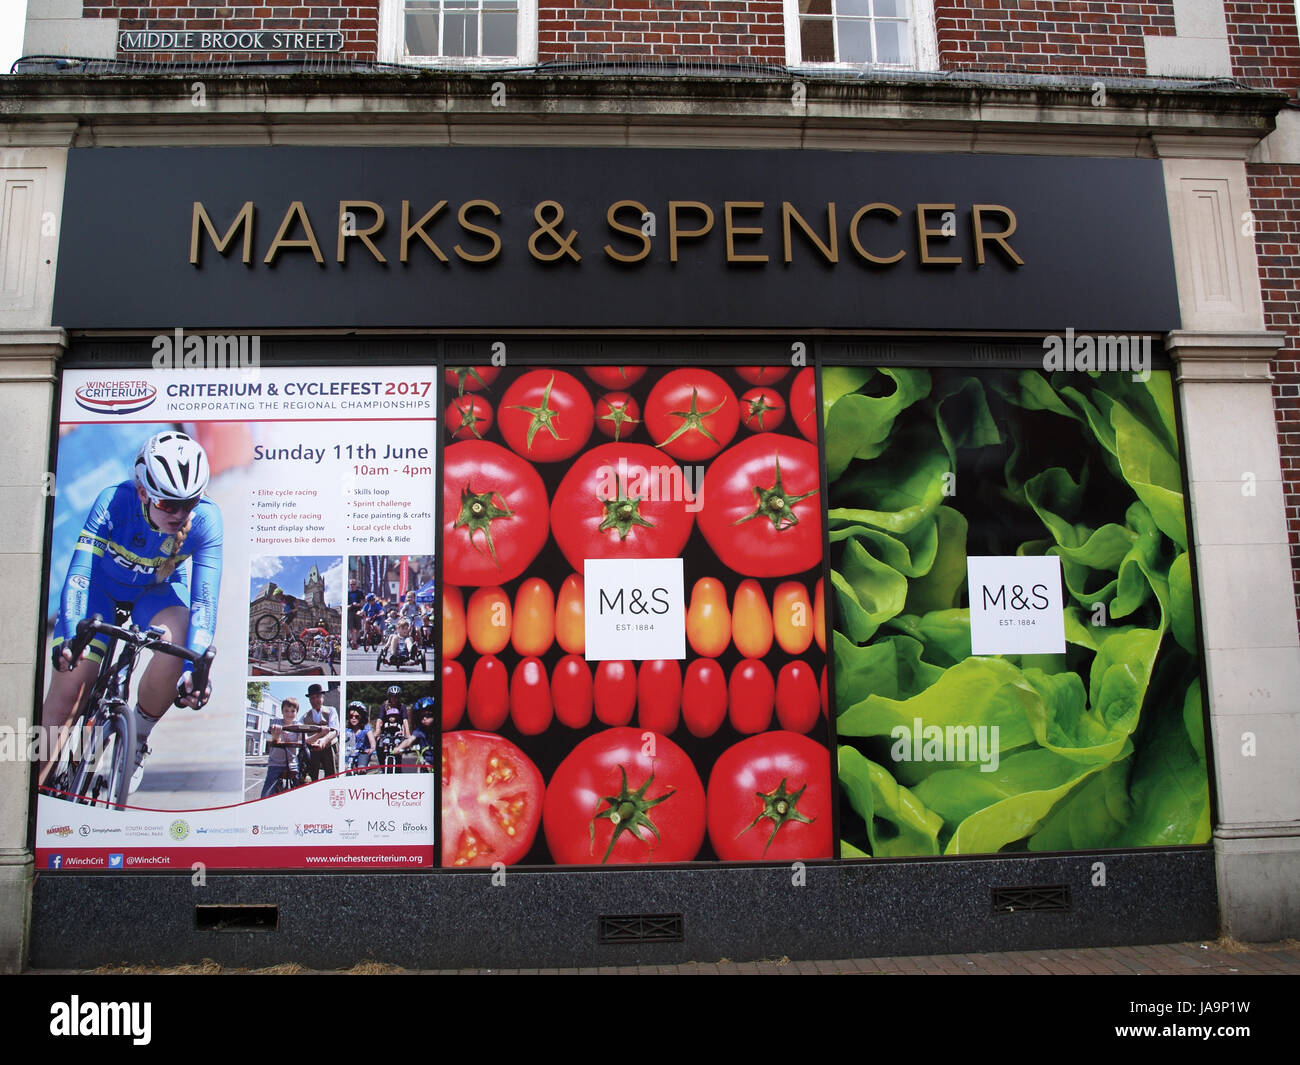 Marks & Spencer signage and window branding showing full colour digital prints - Stock Image